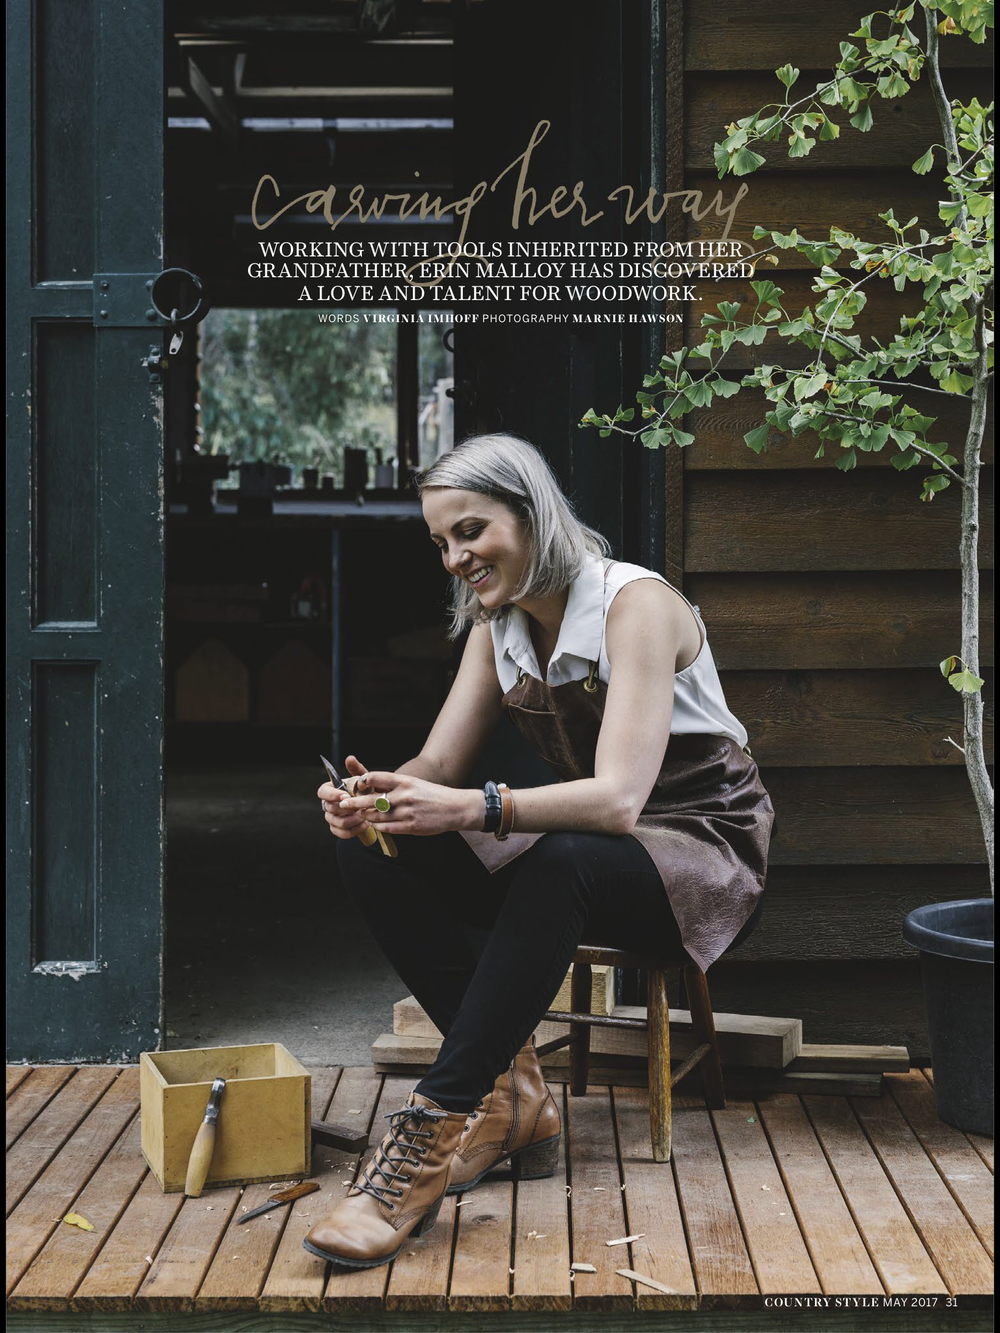 Erin+melbourne,+Melbourne+woodwork+design+for+Country-Style-May-2017+woodworker-2.png